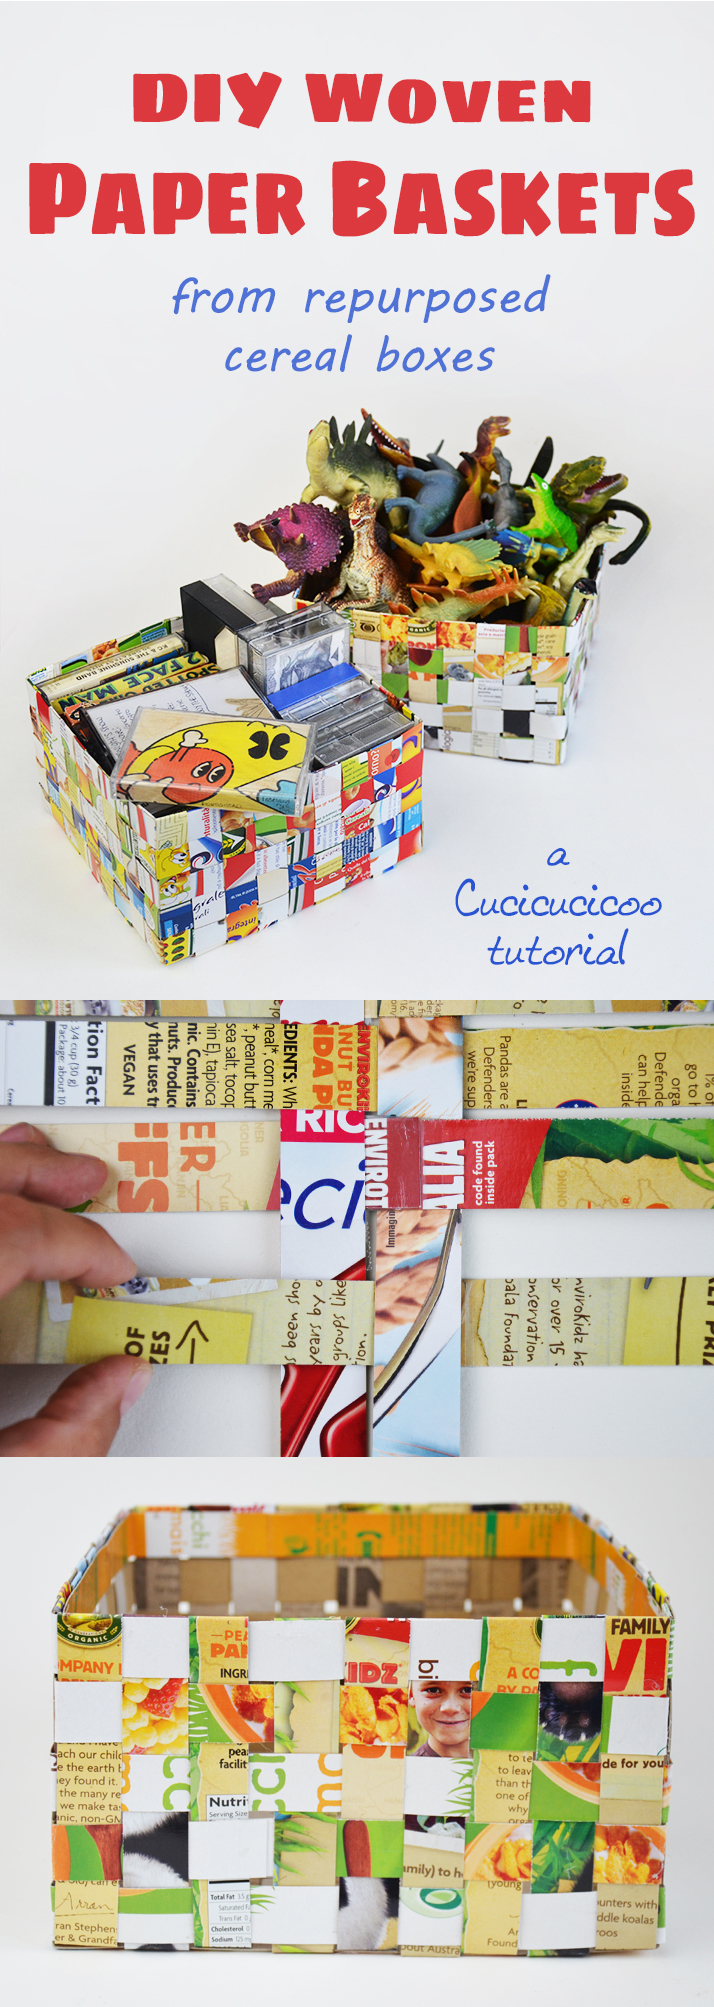 Make your own easy woven paper baskets from repurposed cereal boxes with this easy tutorial by www.cucicucicoo.com. So fun and colorful!